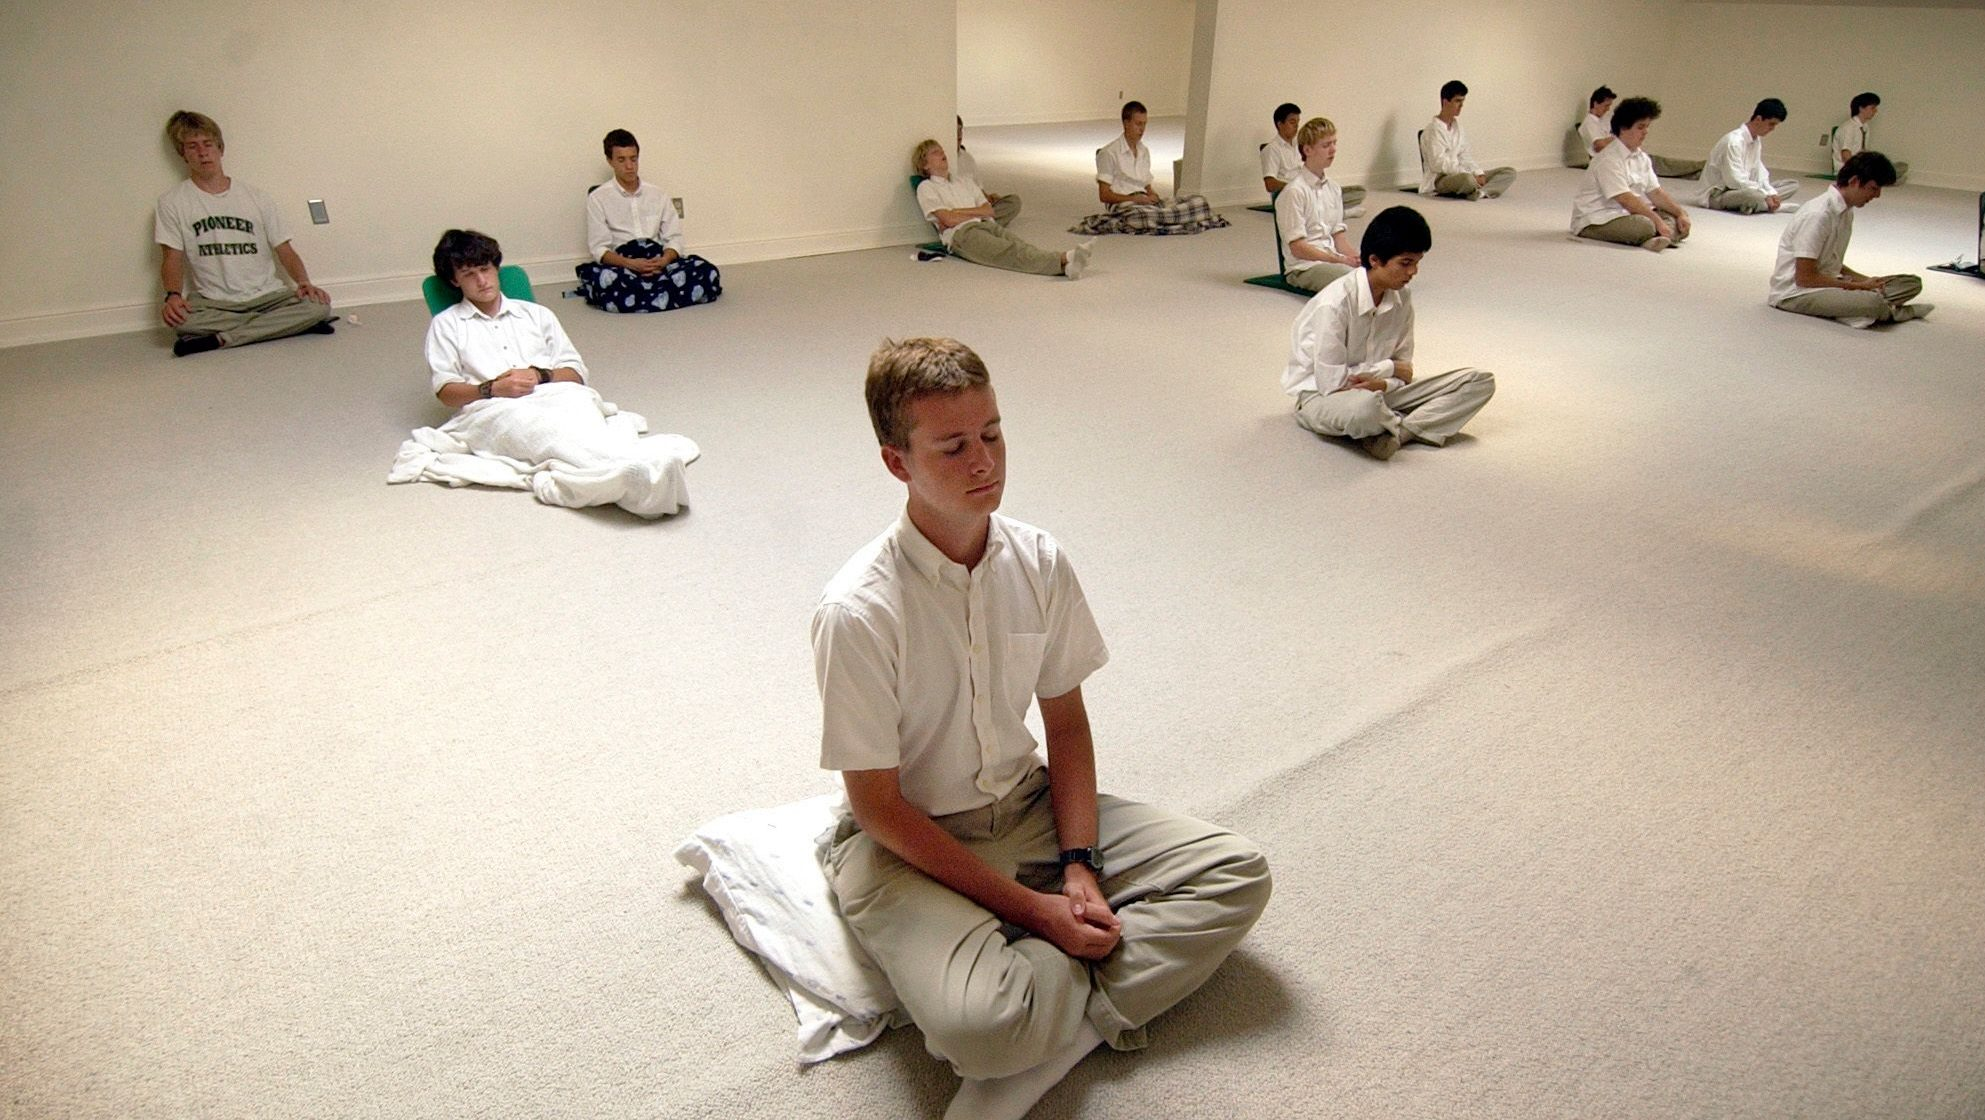 students do their daily practice of meditation